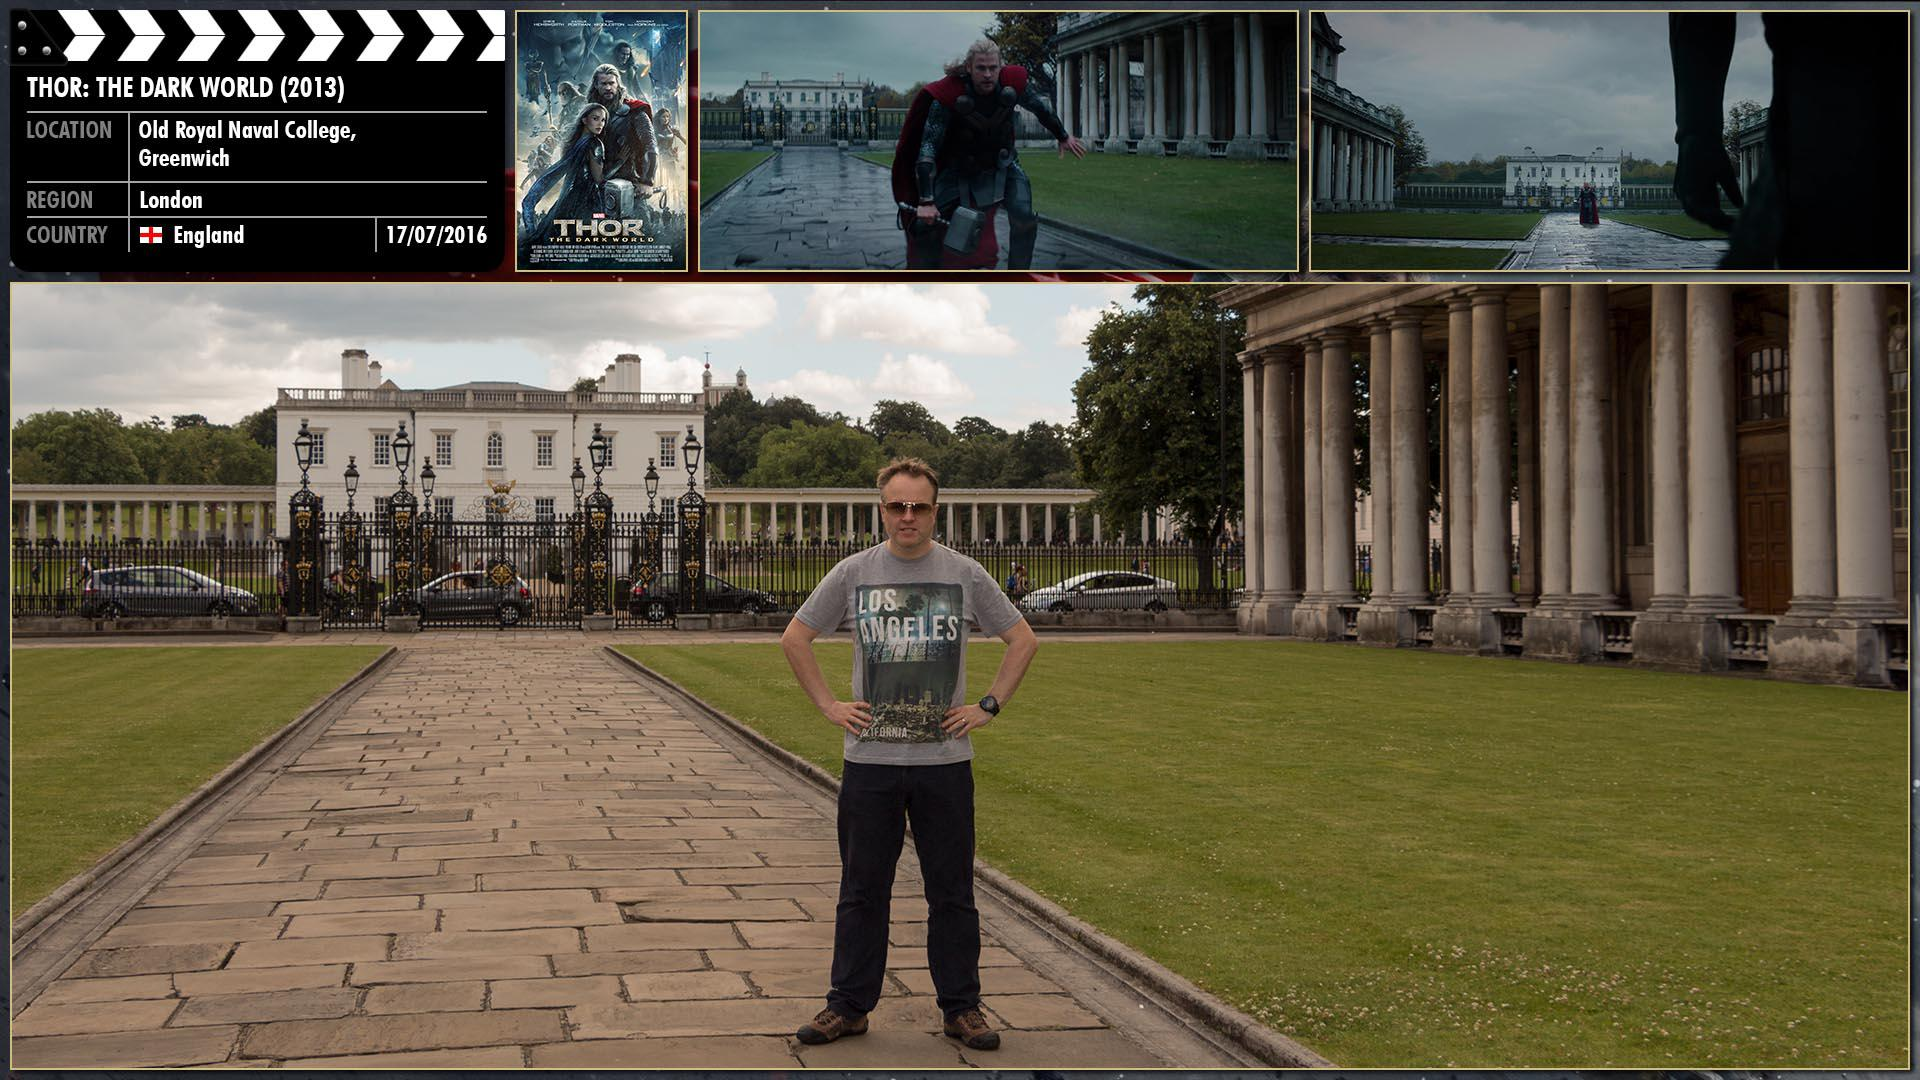 Filming location photo for Thor: The Dark World (2013) 2 of 2